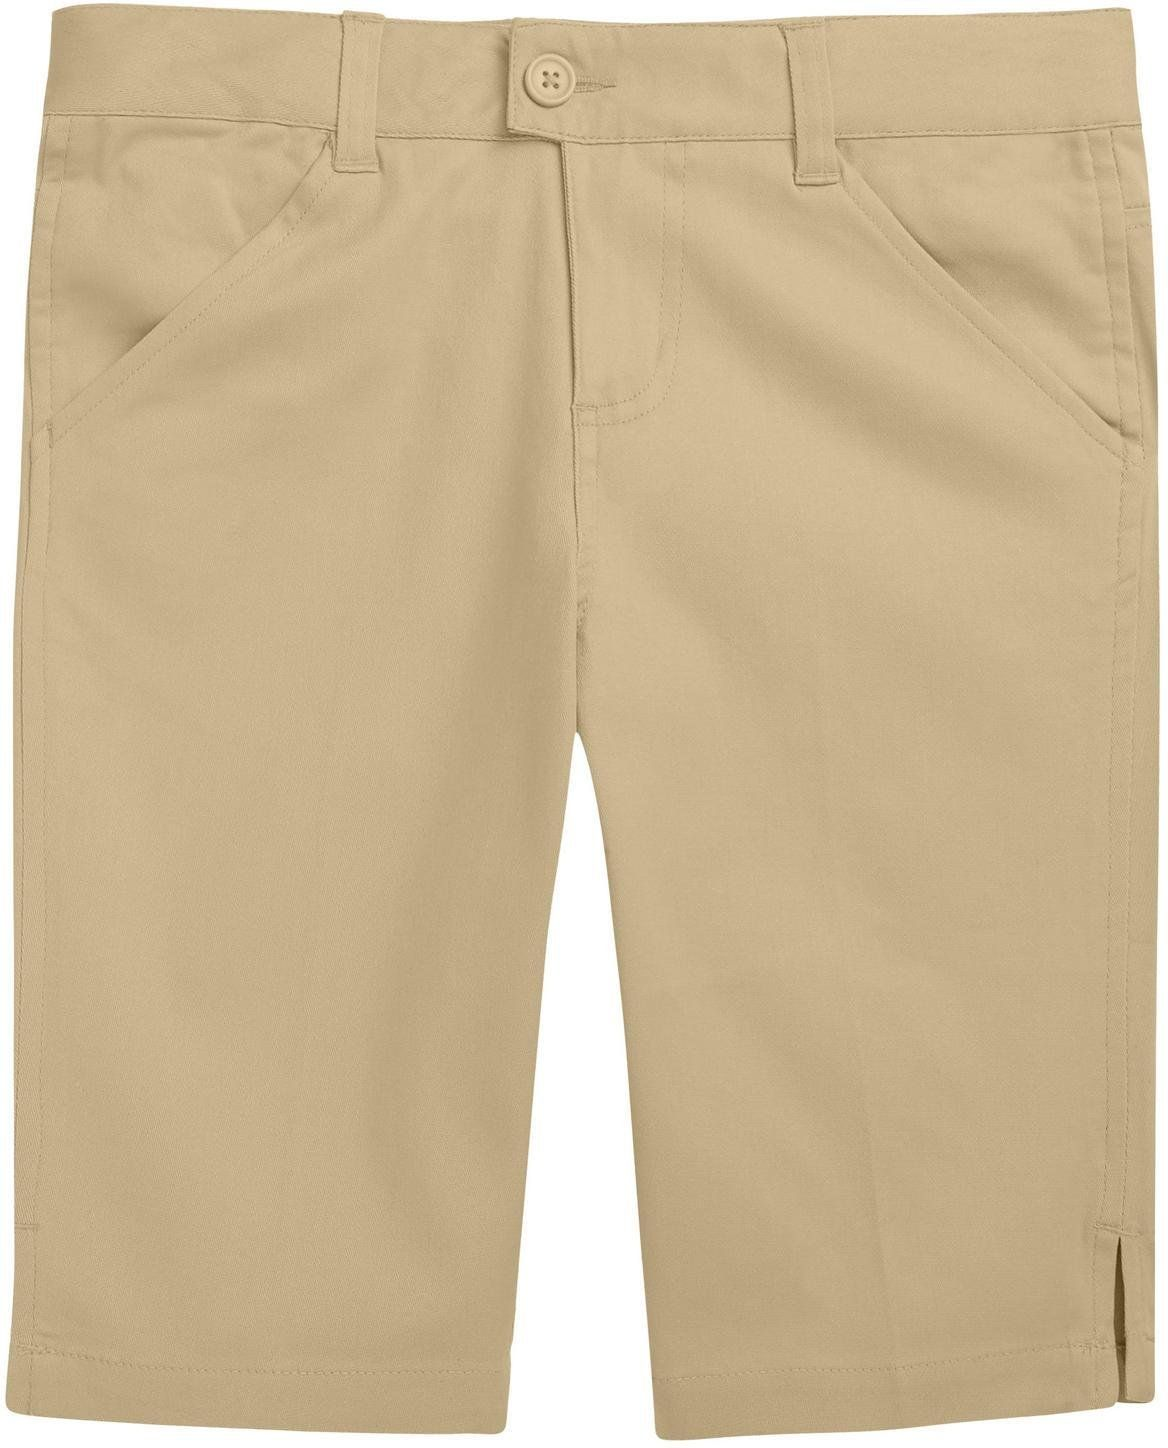 French Toast School Uniform Girls Bermuda Shorts Khaki 6X